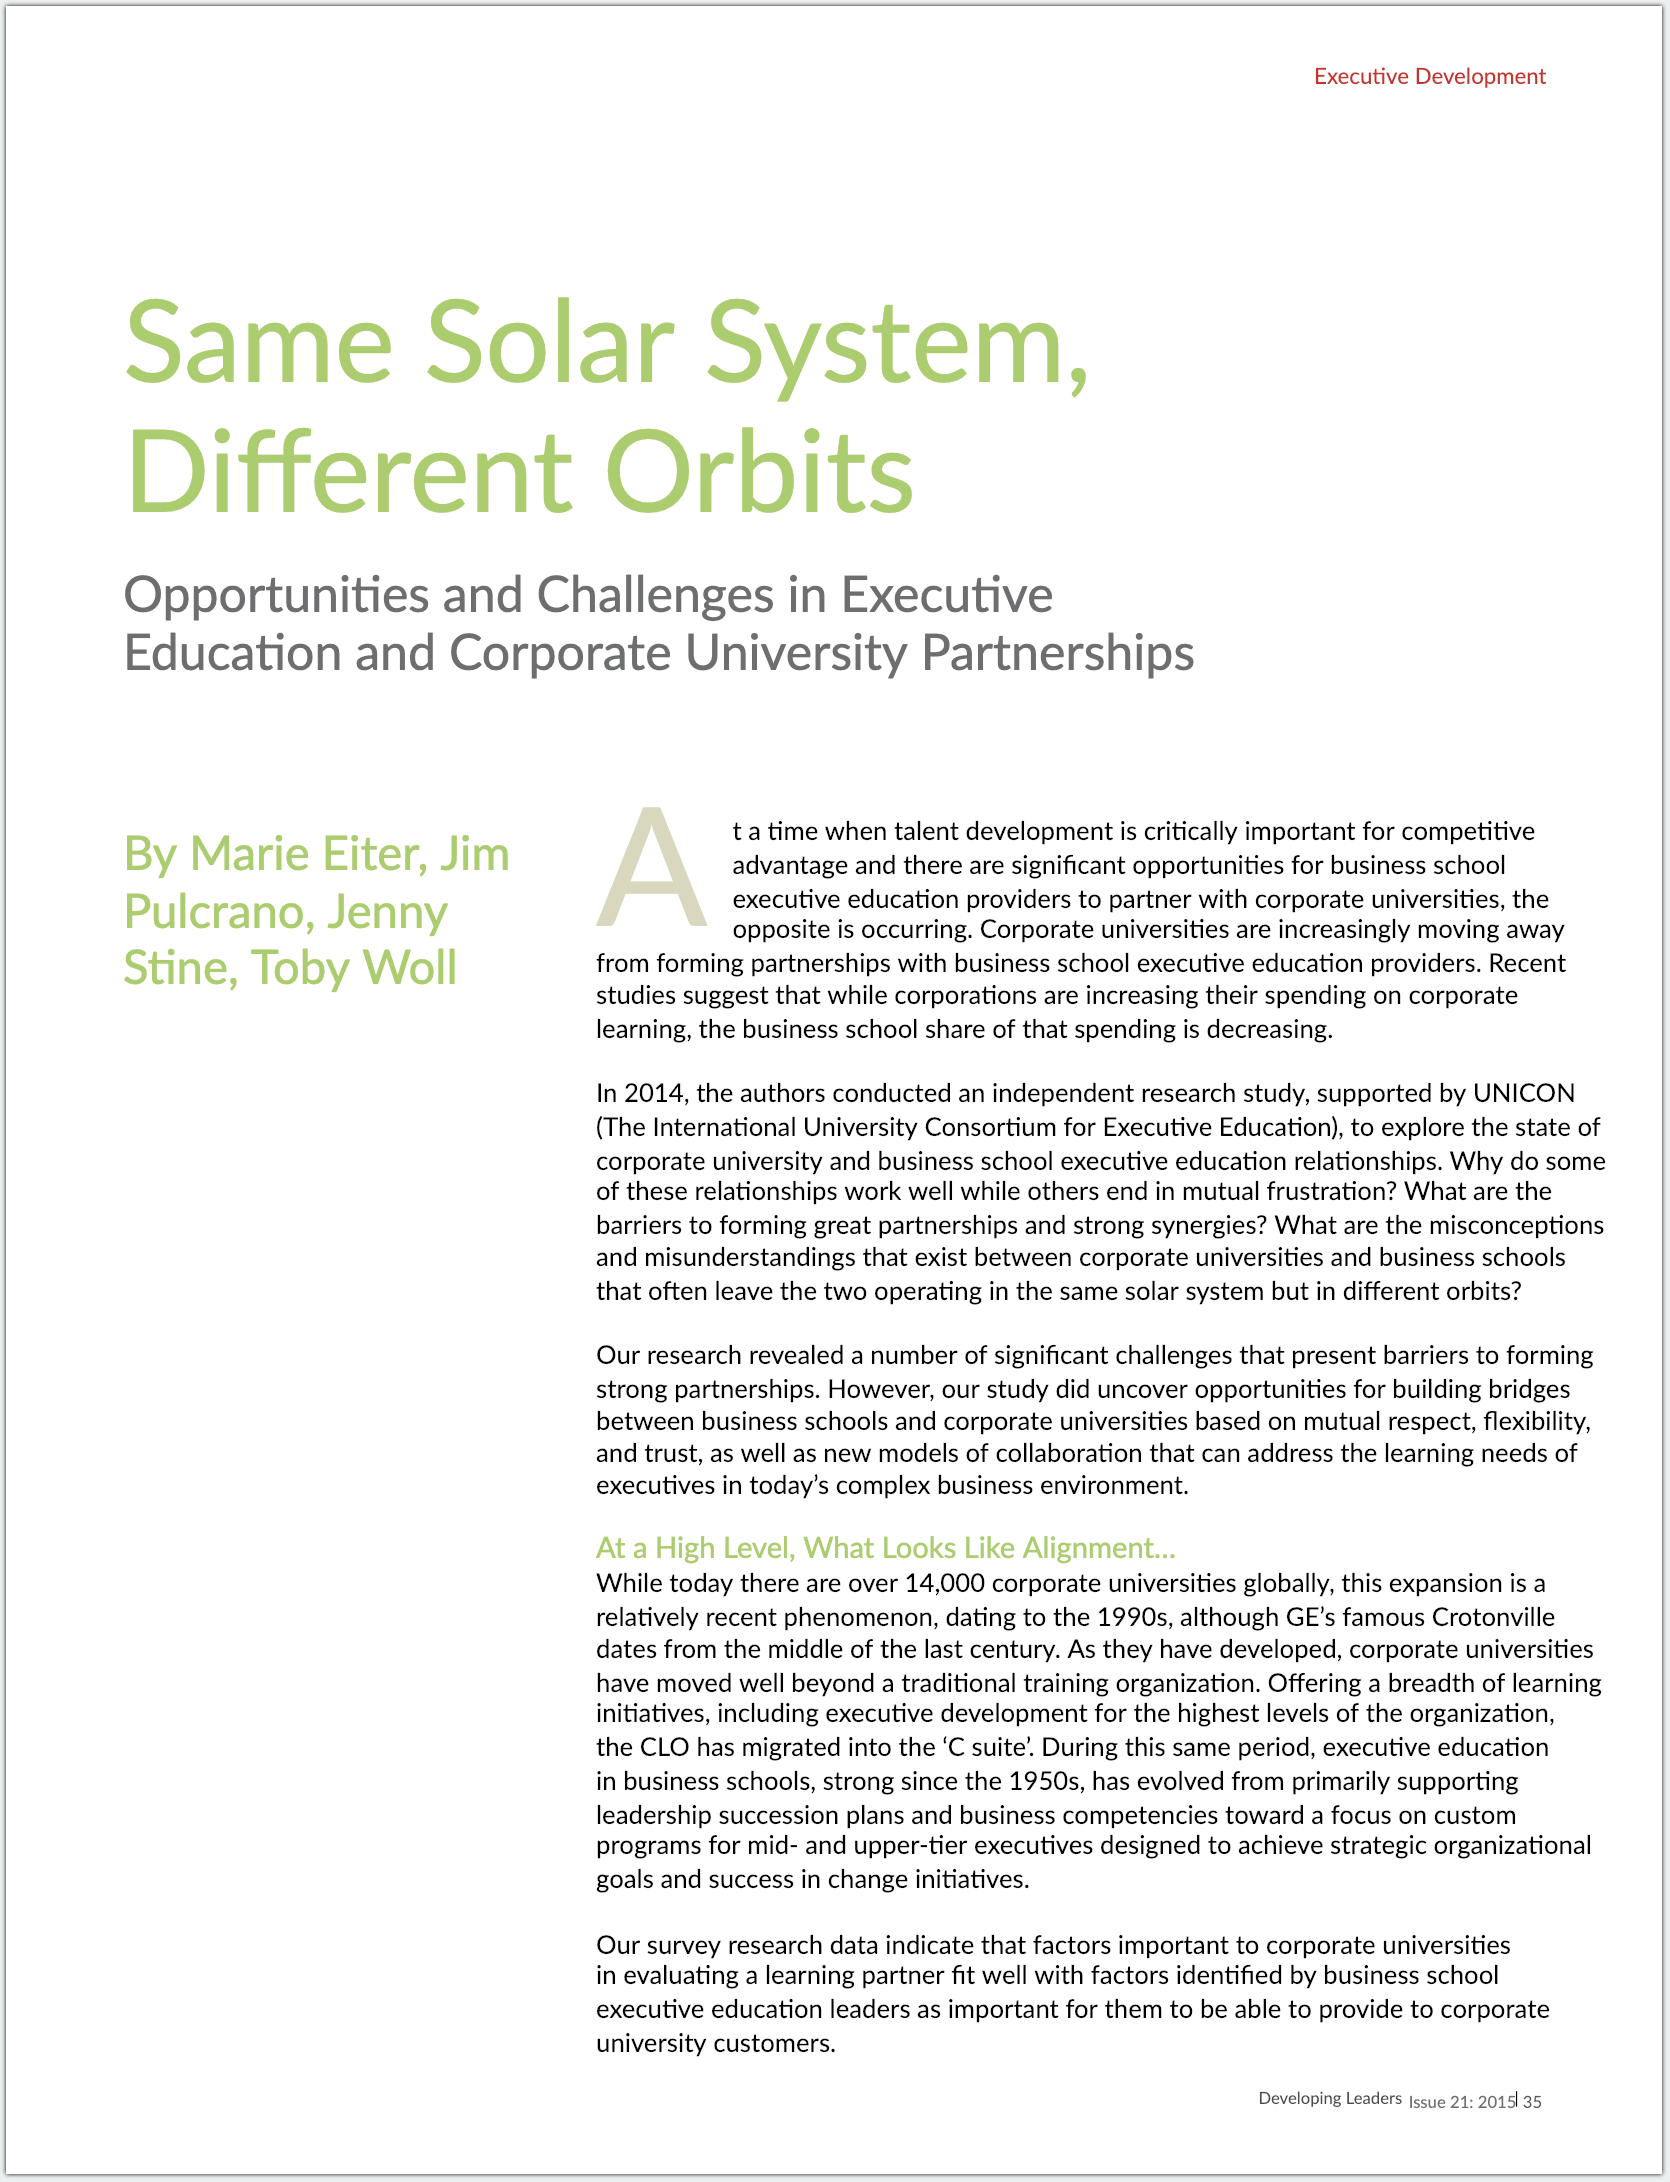 Same Solar System Different Orbits: Executive Education and Corporate University Partnerships ,  IEDP Developing Leaders , Issue 21, October 2015.